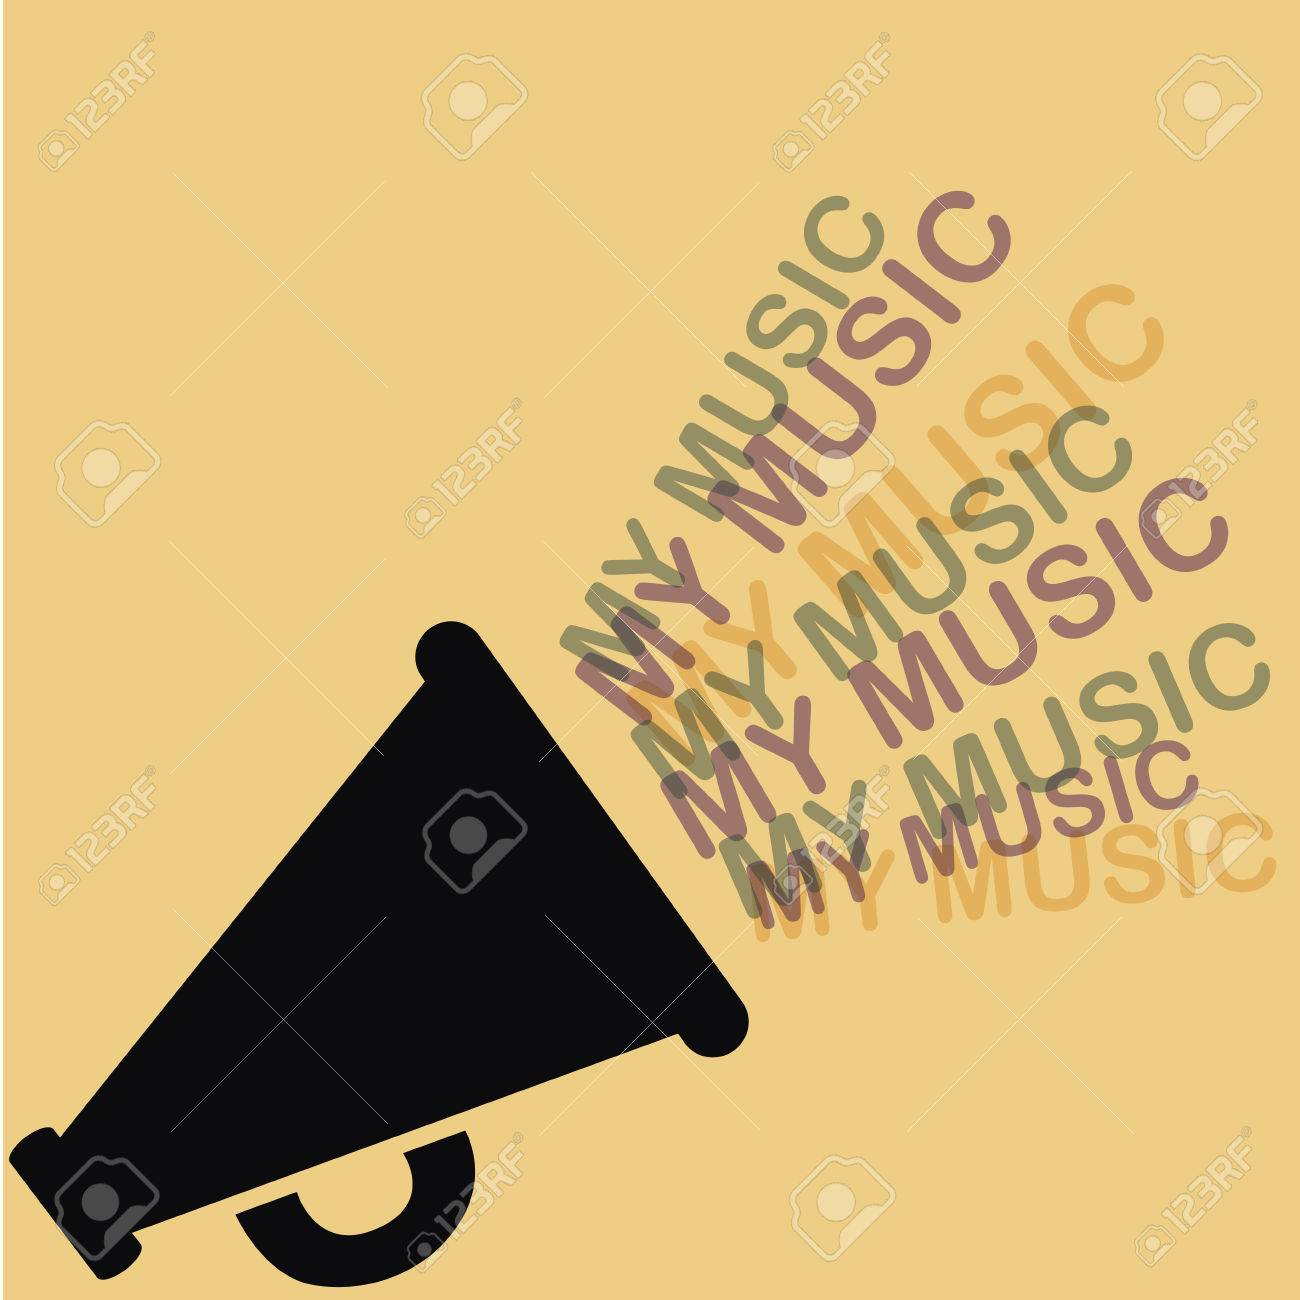 silhouette of a megaphone with music coming out from it - 22897755